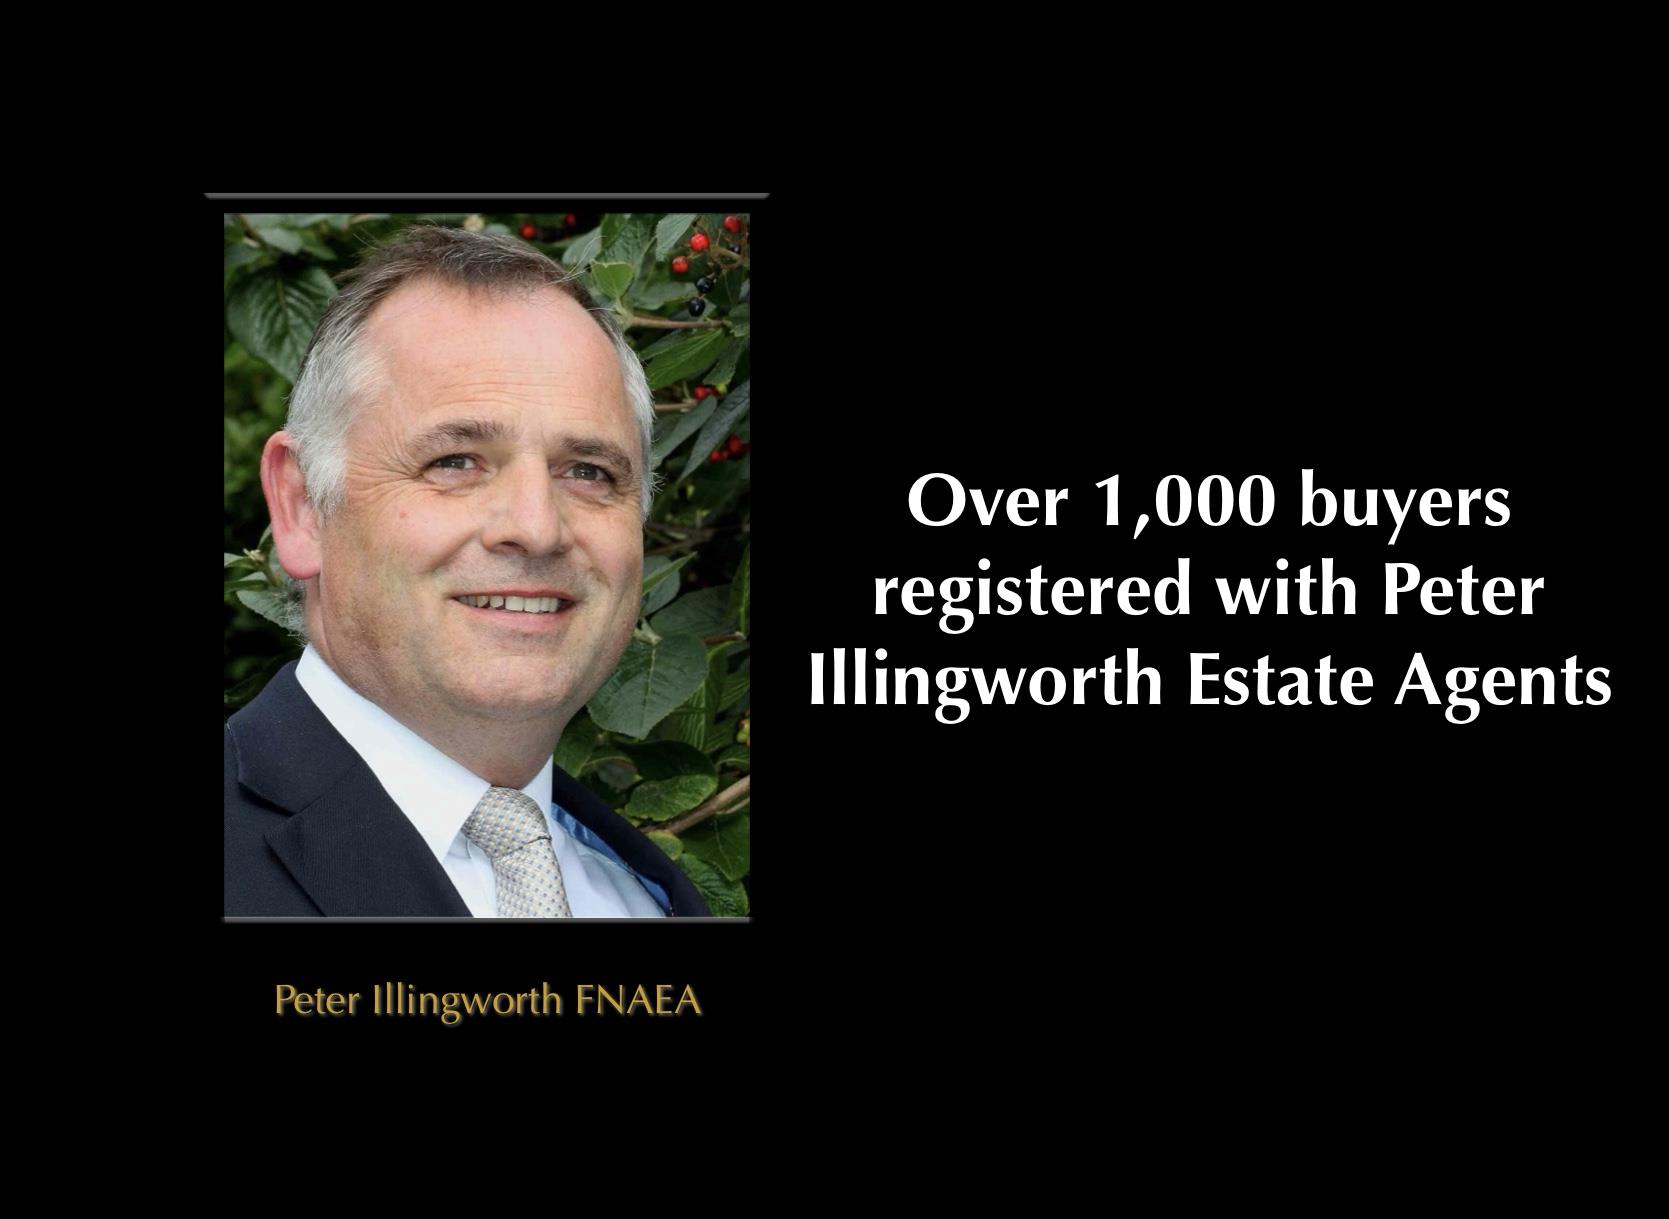 Over 1,000 buyers are registered with Peter Illingworth Estate Agents